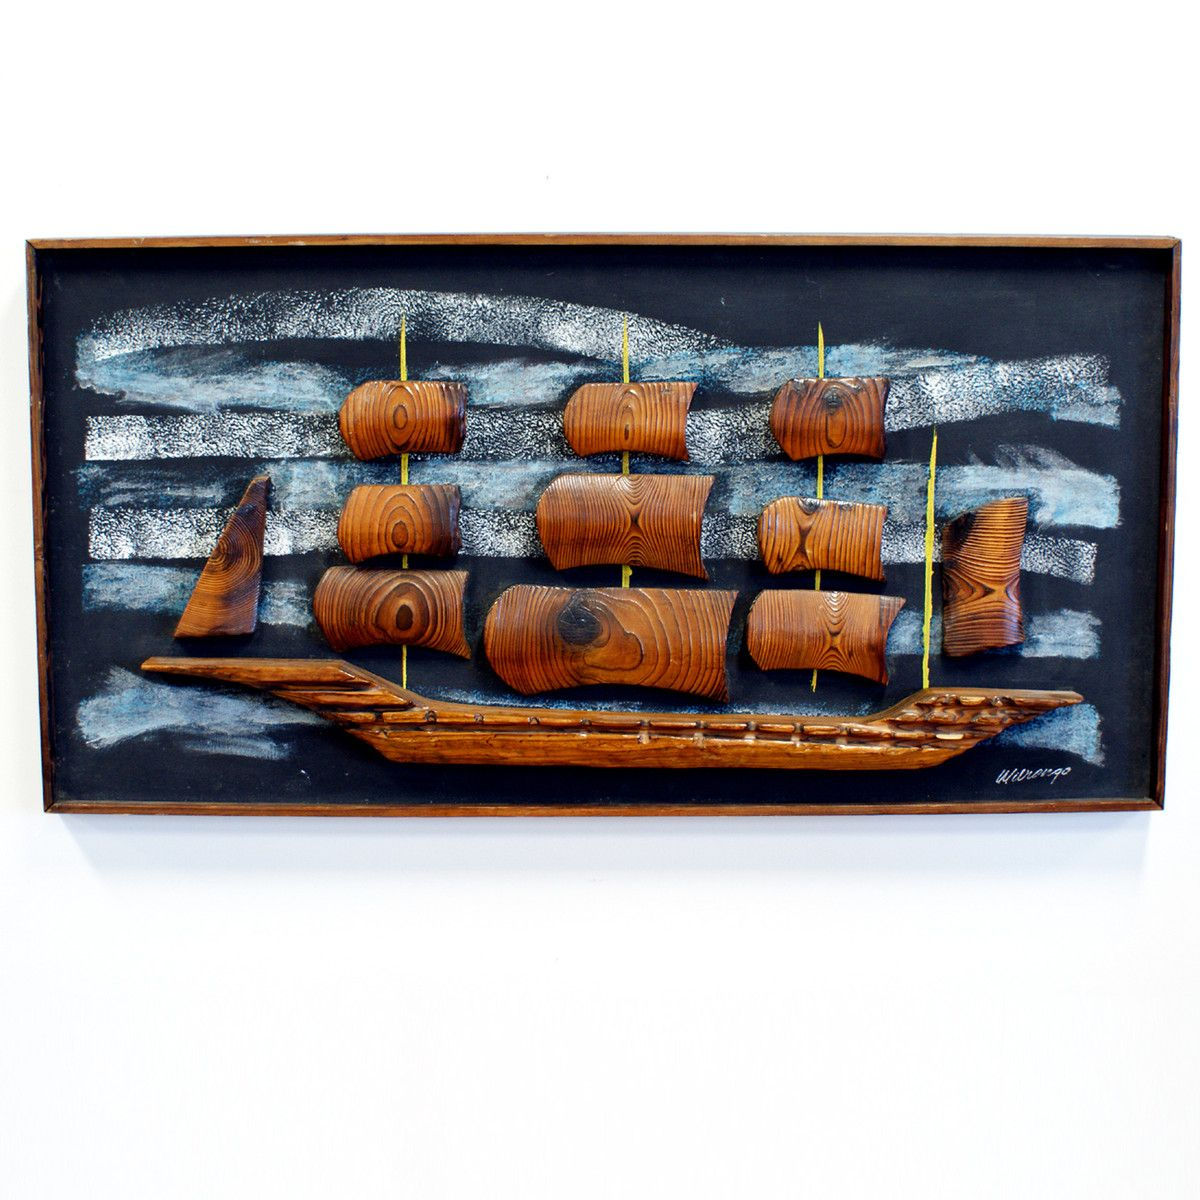 Fab 60s Artwork: 60s Witco Ship Framed Picture. Kitsch. Mid